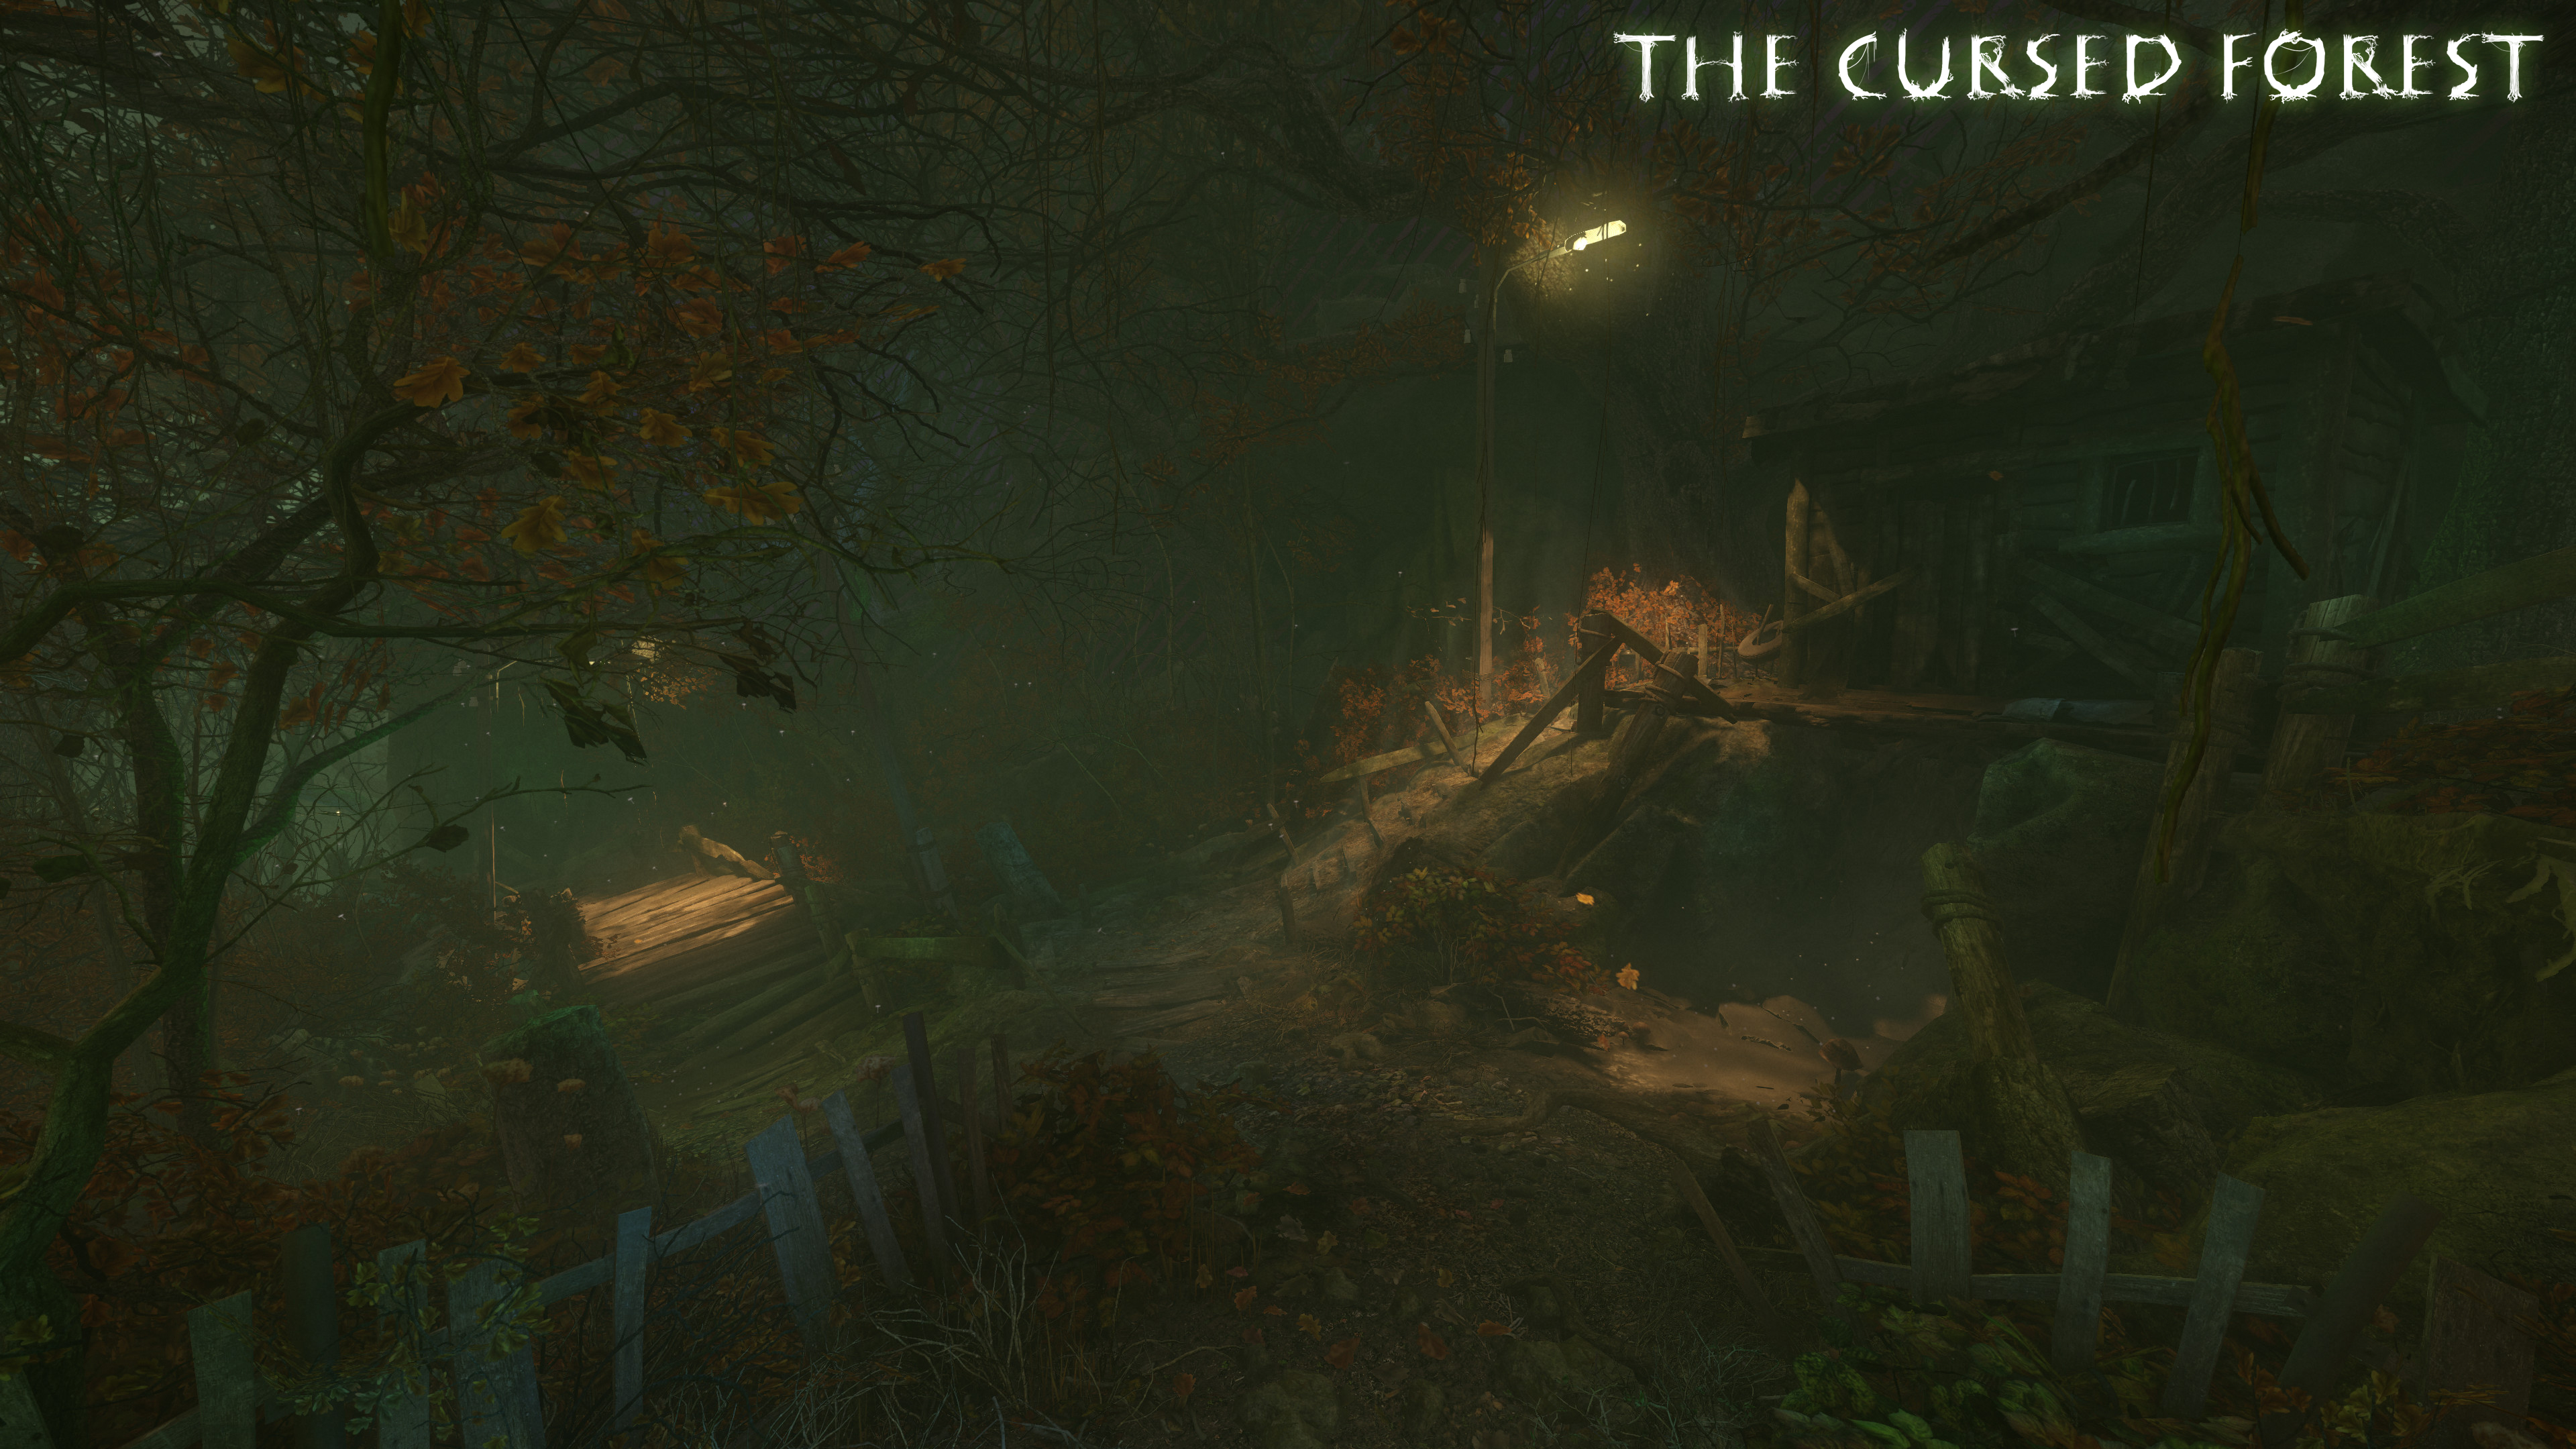 the cursed forest L3 1 L f